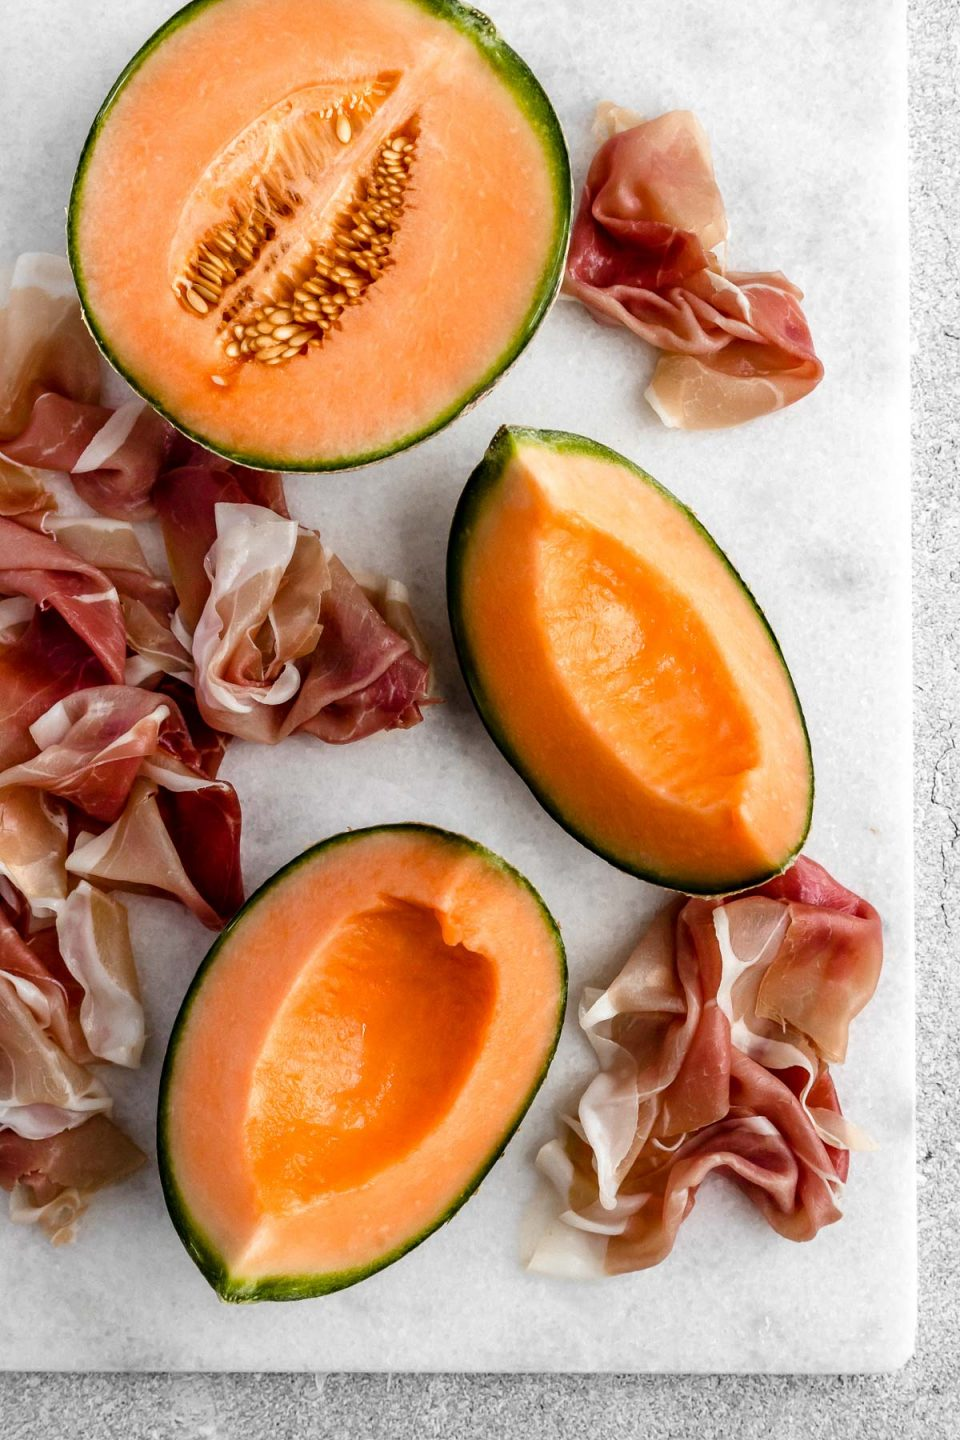 Cantaloupe melon and thinly sliced prosciutto on a white cutting board. The cantaloupe is sliced, half with seeds still in it & half deseeded.